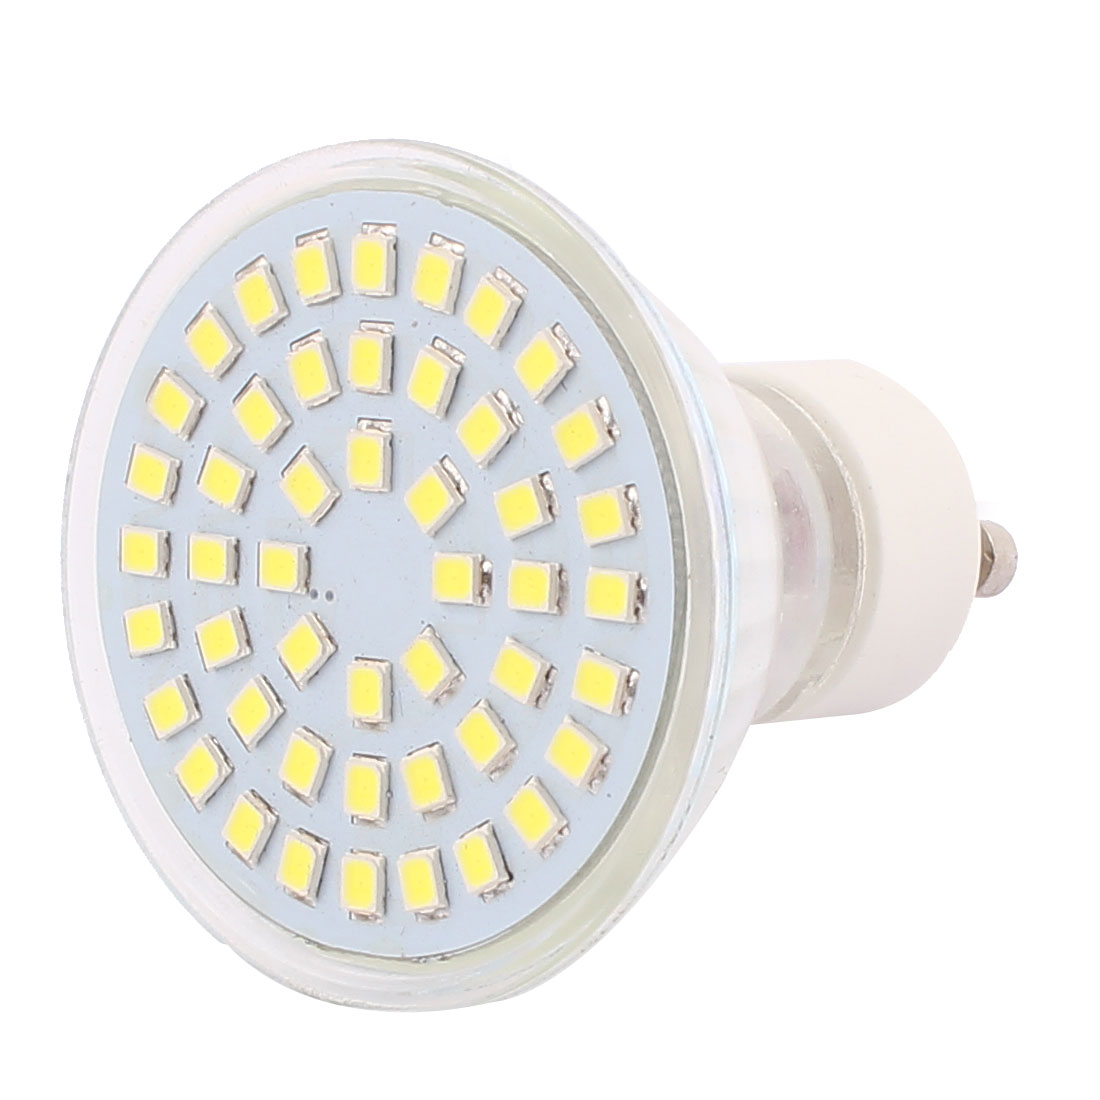 GU10 SMD 2835 48 LEDs 4W Glass Energy-Saving LED Lamp Bulb White AC 220V